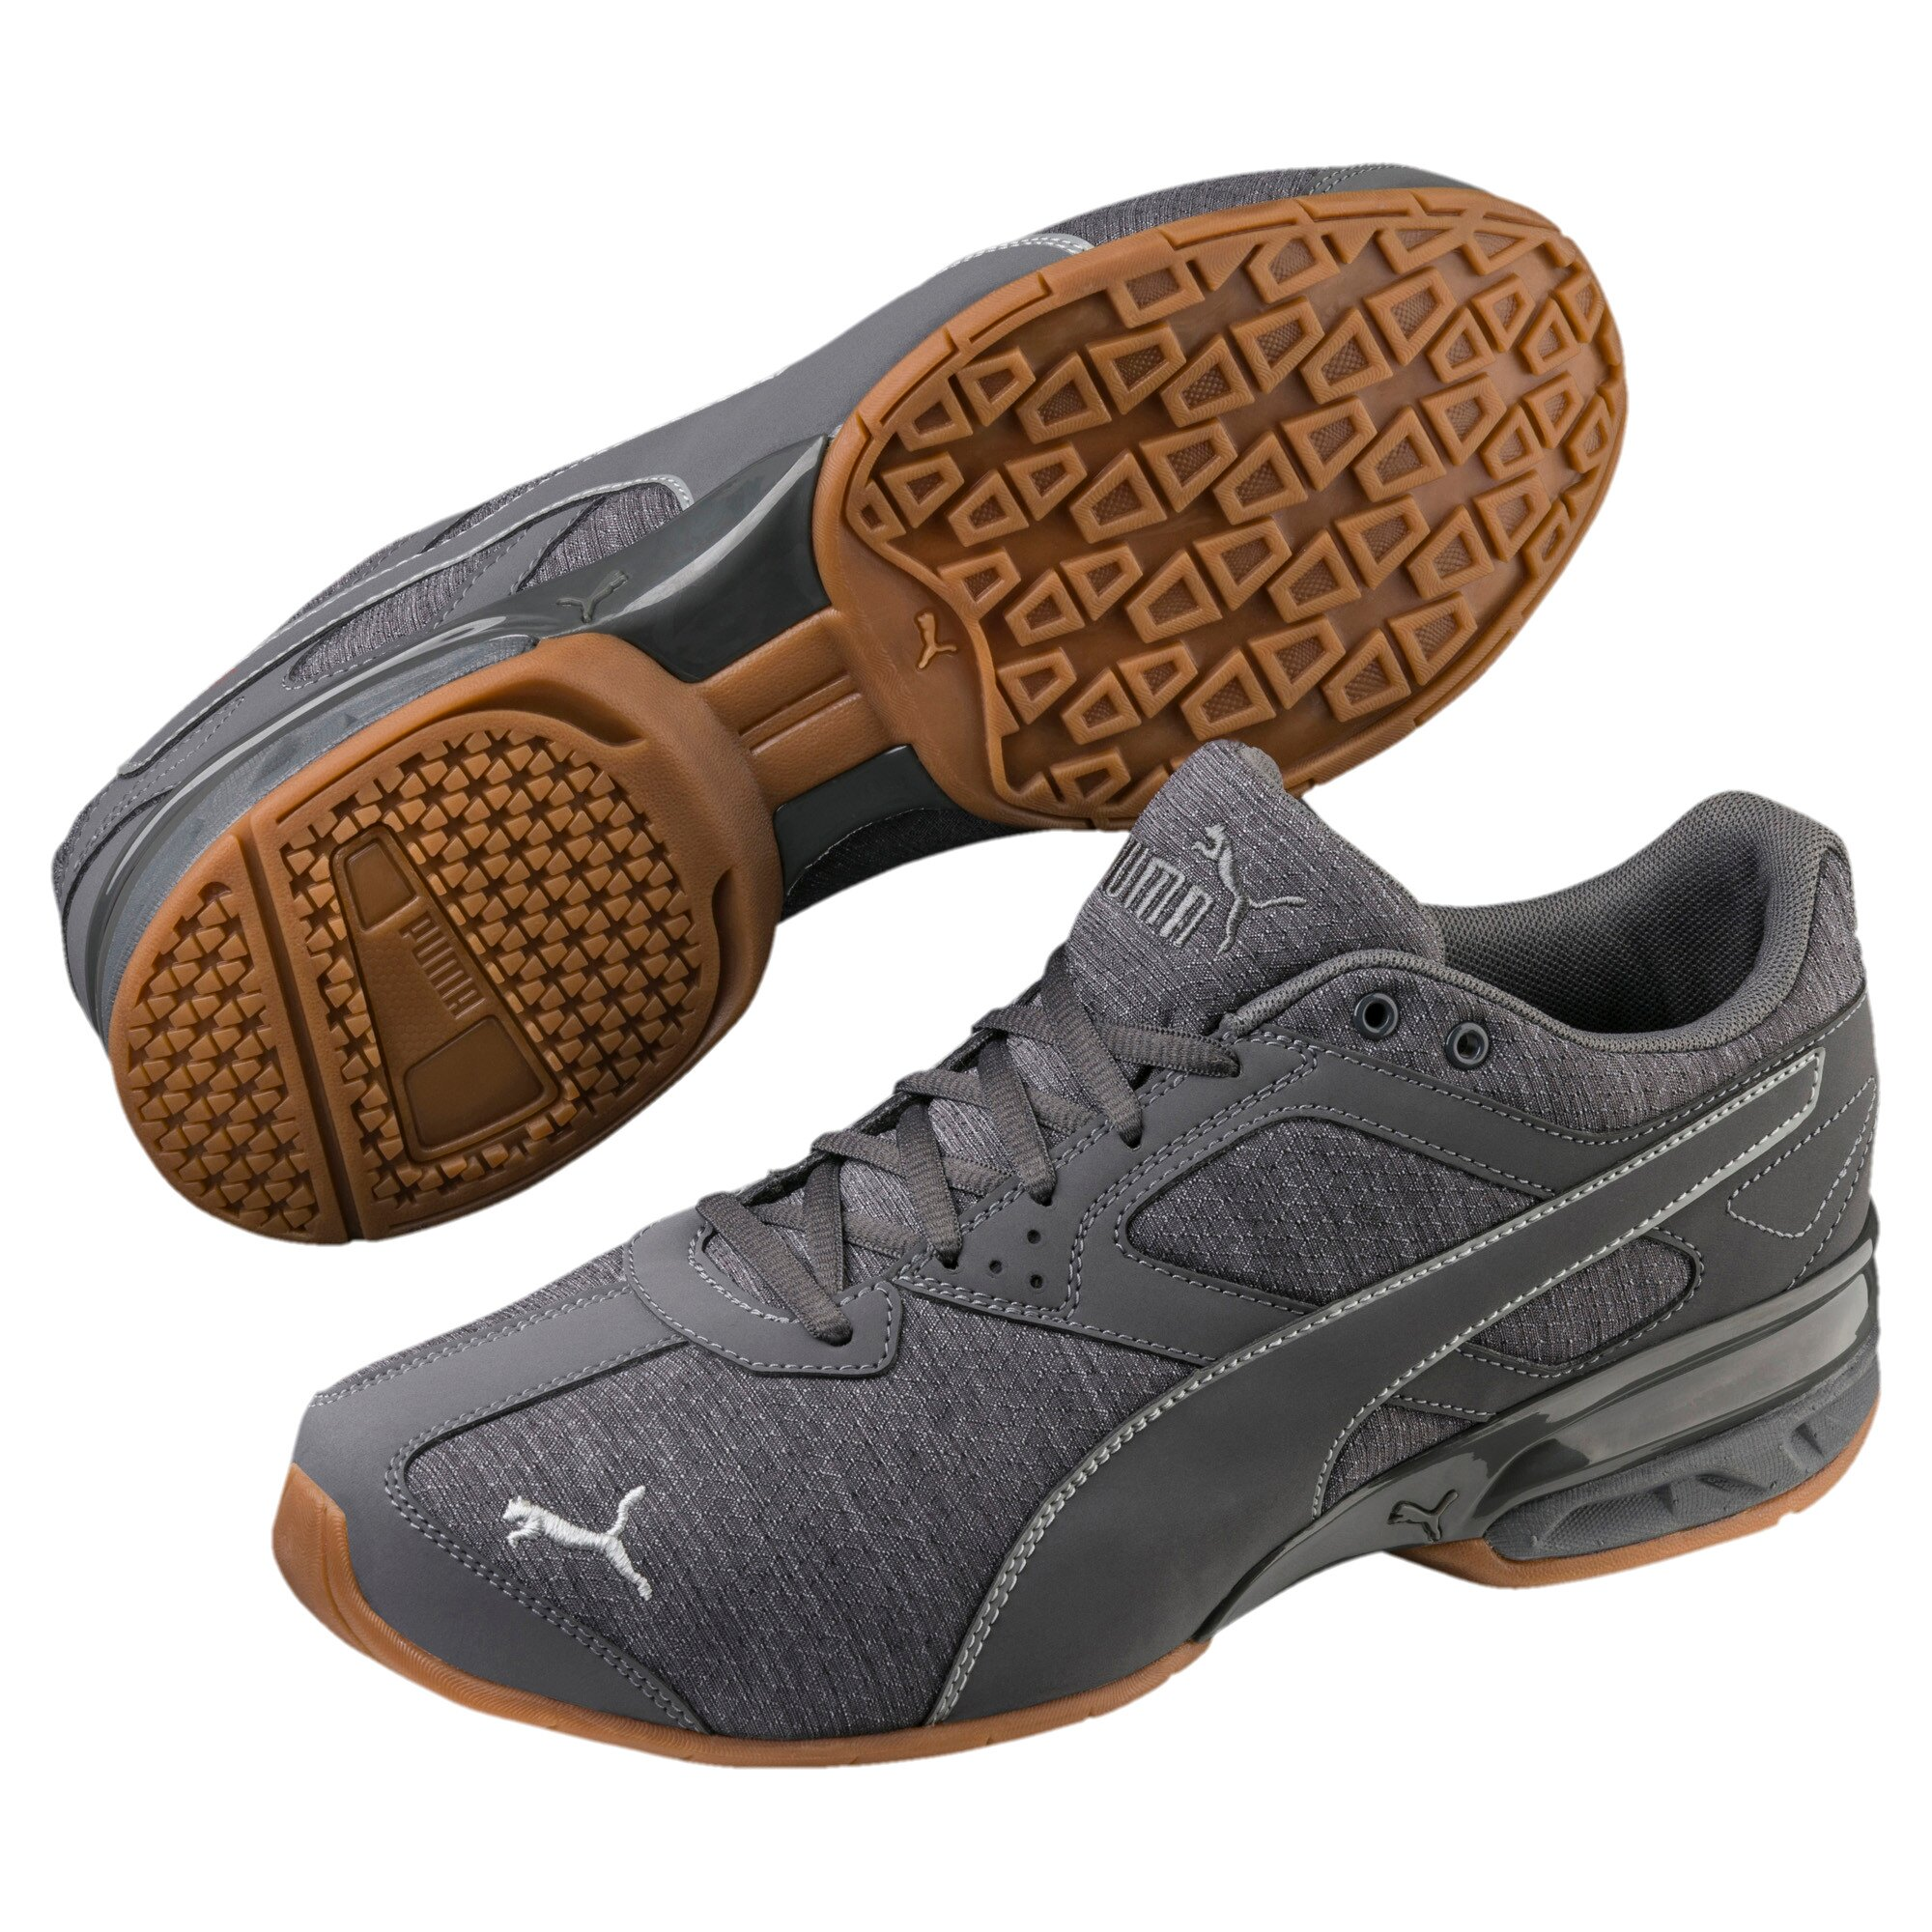 bb4feed0940fe1 Official Puma Store  PUMA Tazon 6 Heather Rip Men s Sneakers ...